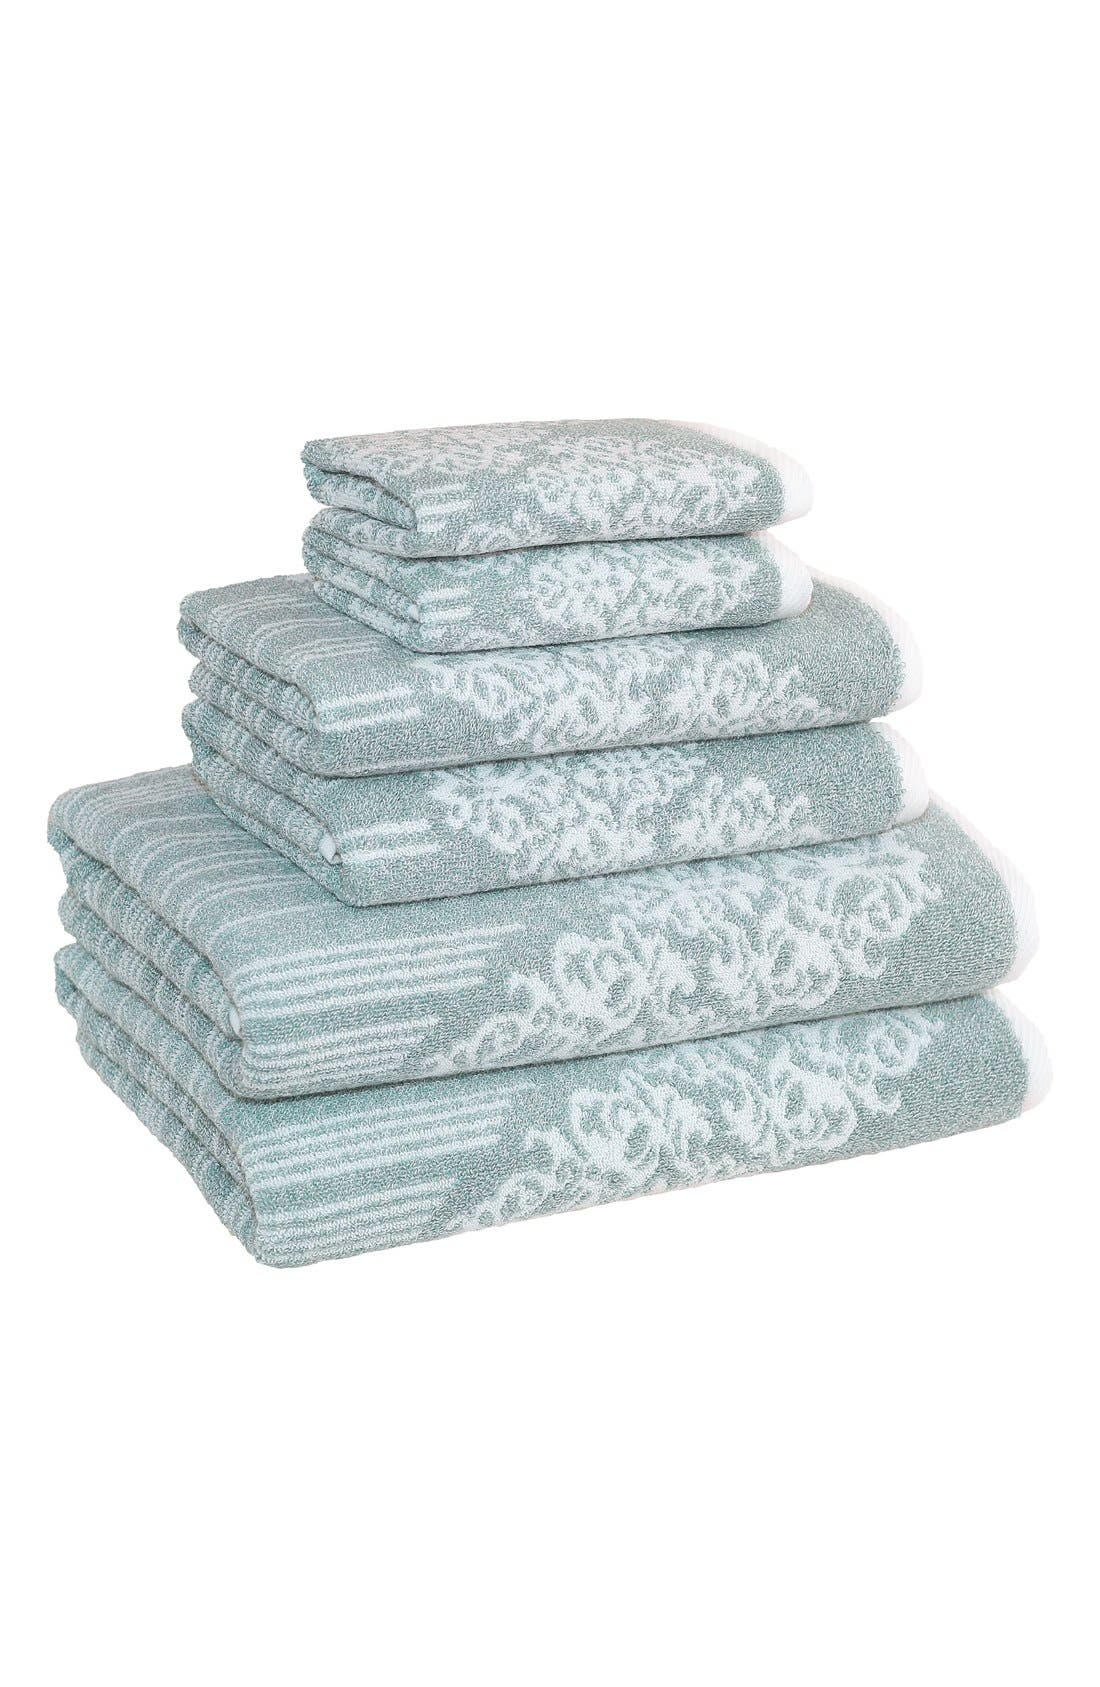 Linum 'Gioia' Bath Towels, Hand Towels & Washcloths,                             Main thumbnail 1, color,                             440